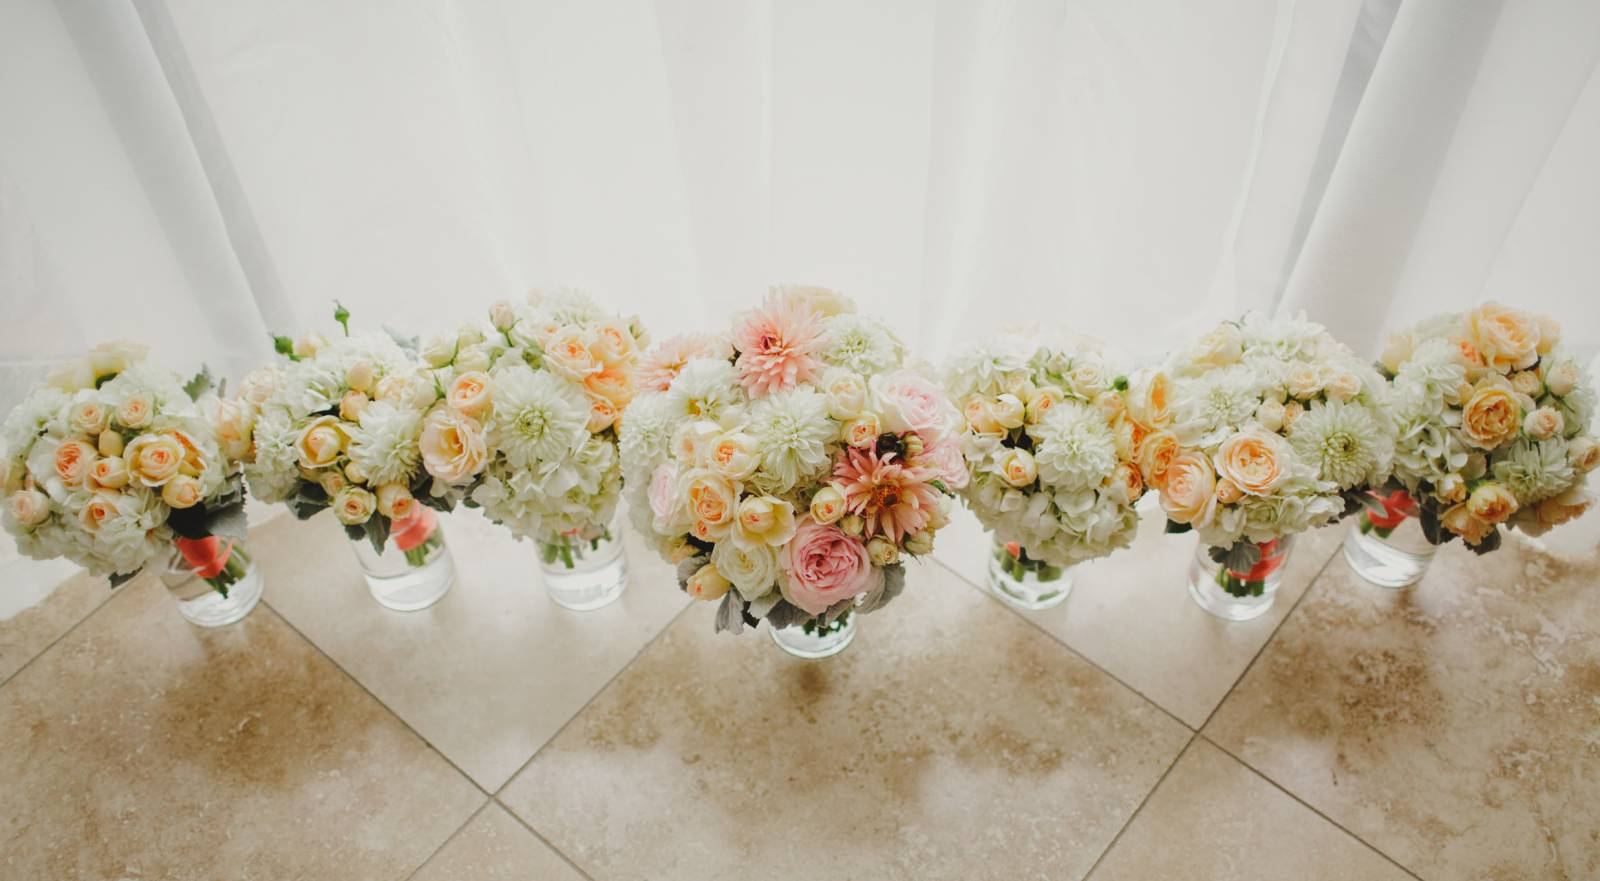 Fresh Flowers for your Wedding | The Wedding Standard�